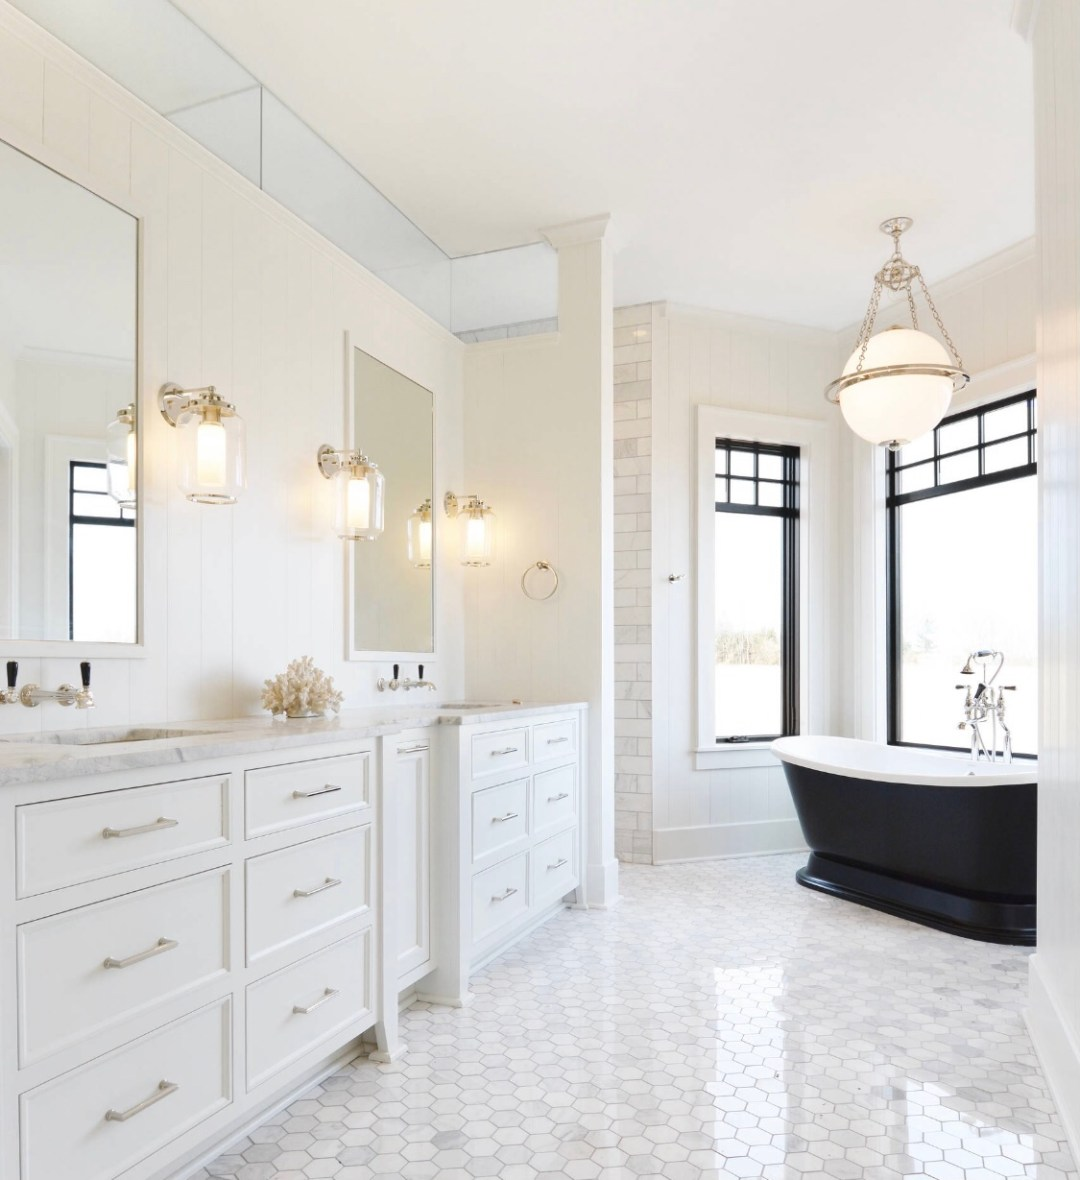 Bathroom lighting is all about a well lit vanity